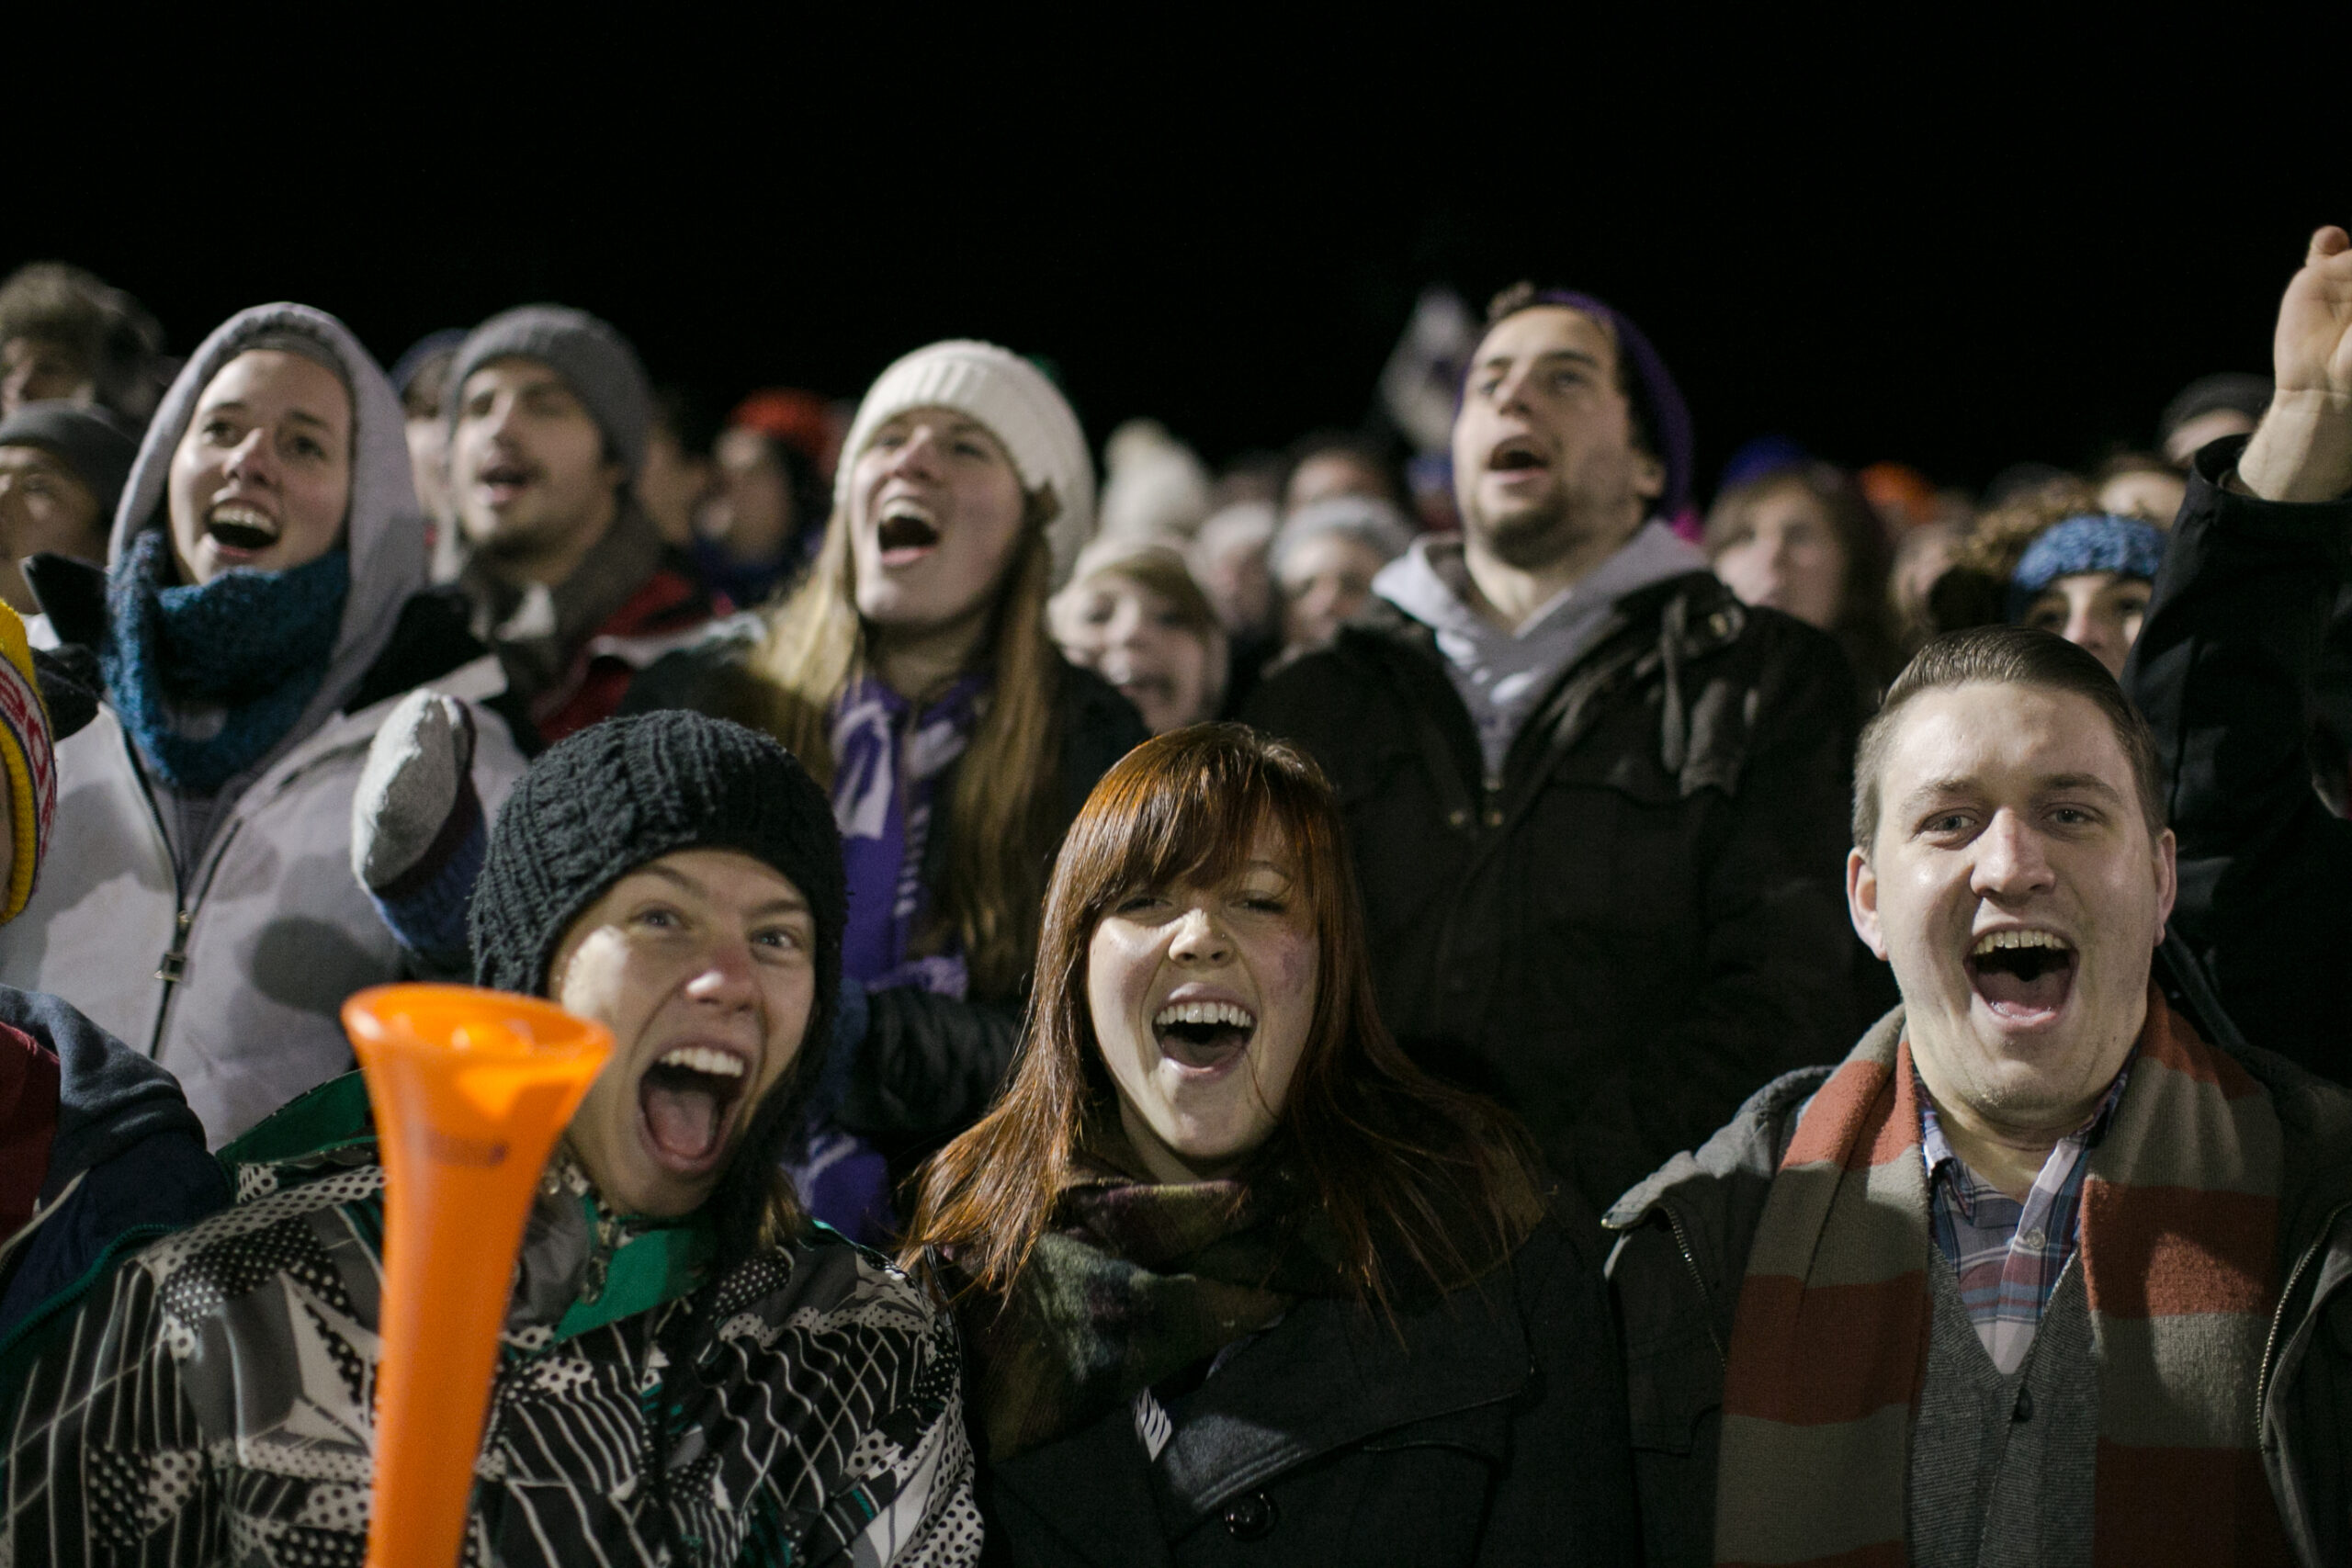 Goshen College students cheer for the men's soccer team at a packed game